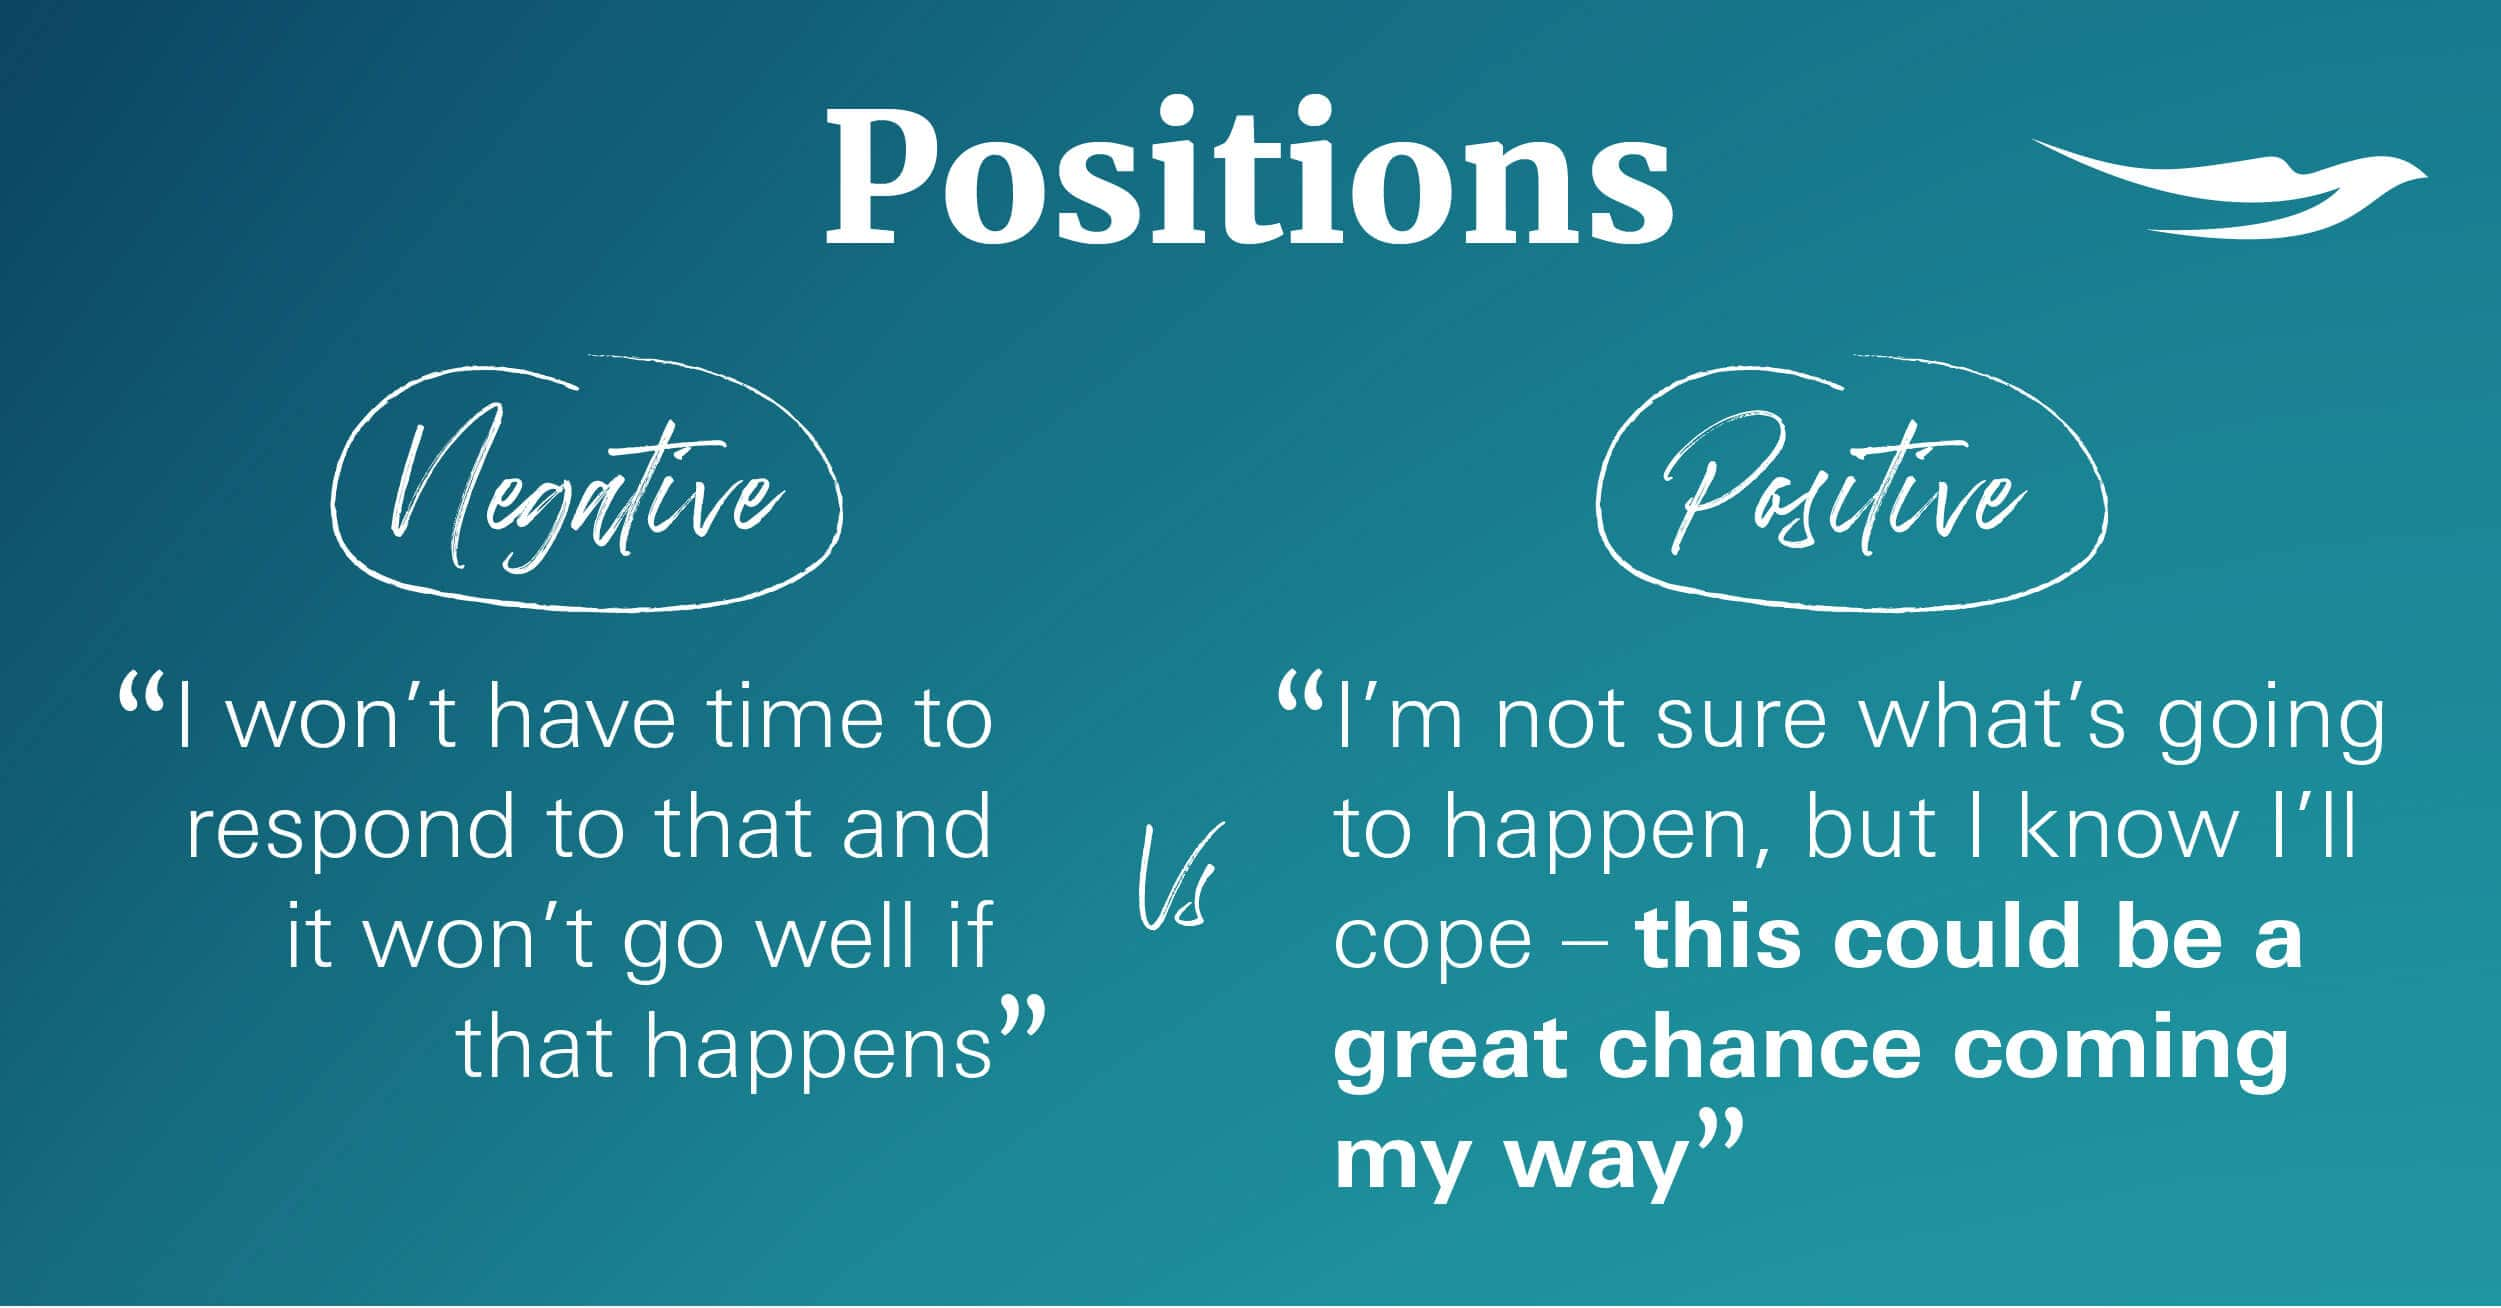 Negative and positive perceptions